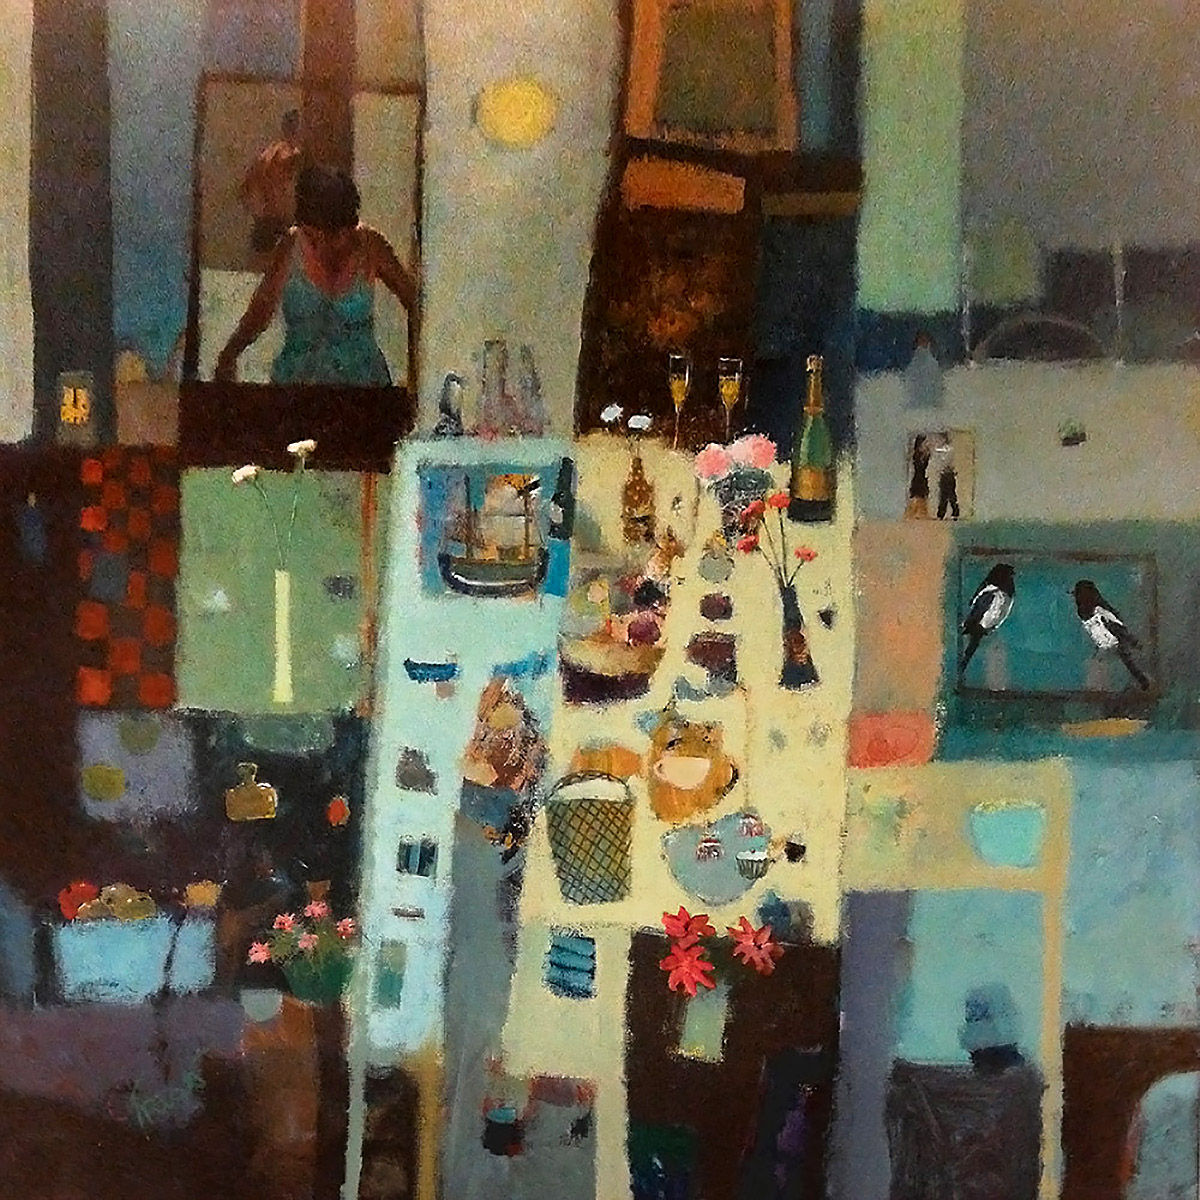 James Fraser RSW, 'No Troubles Lots of Bubbles', mixed mediaJames Fraser RSW, 'No Troubles Lots of Bubbles', mixed media